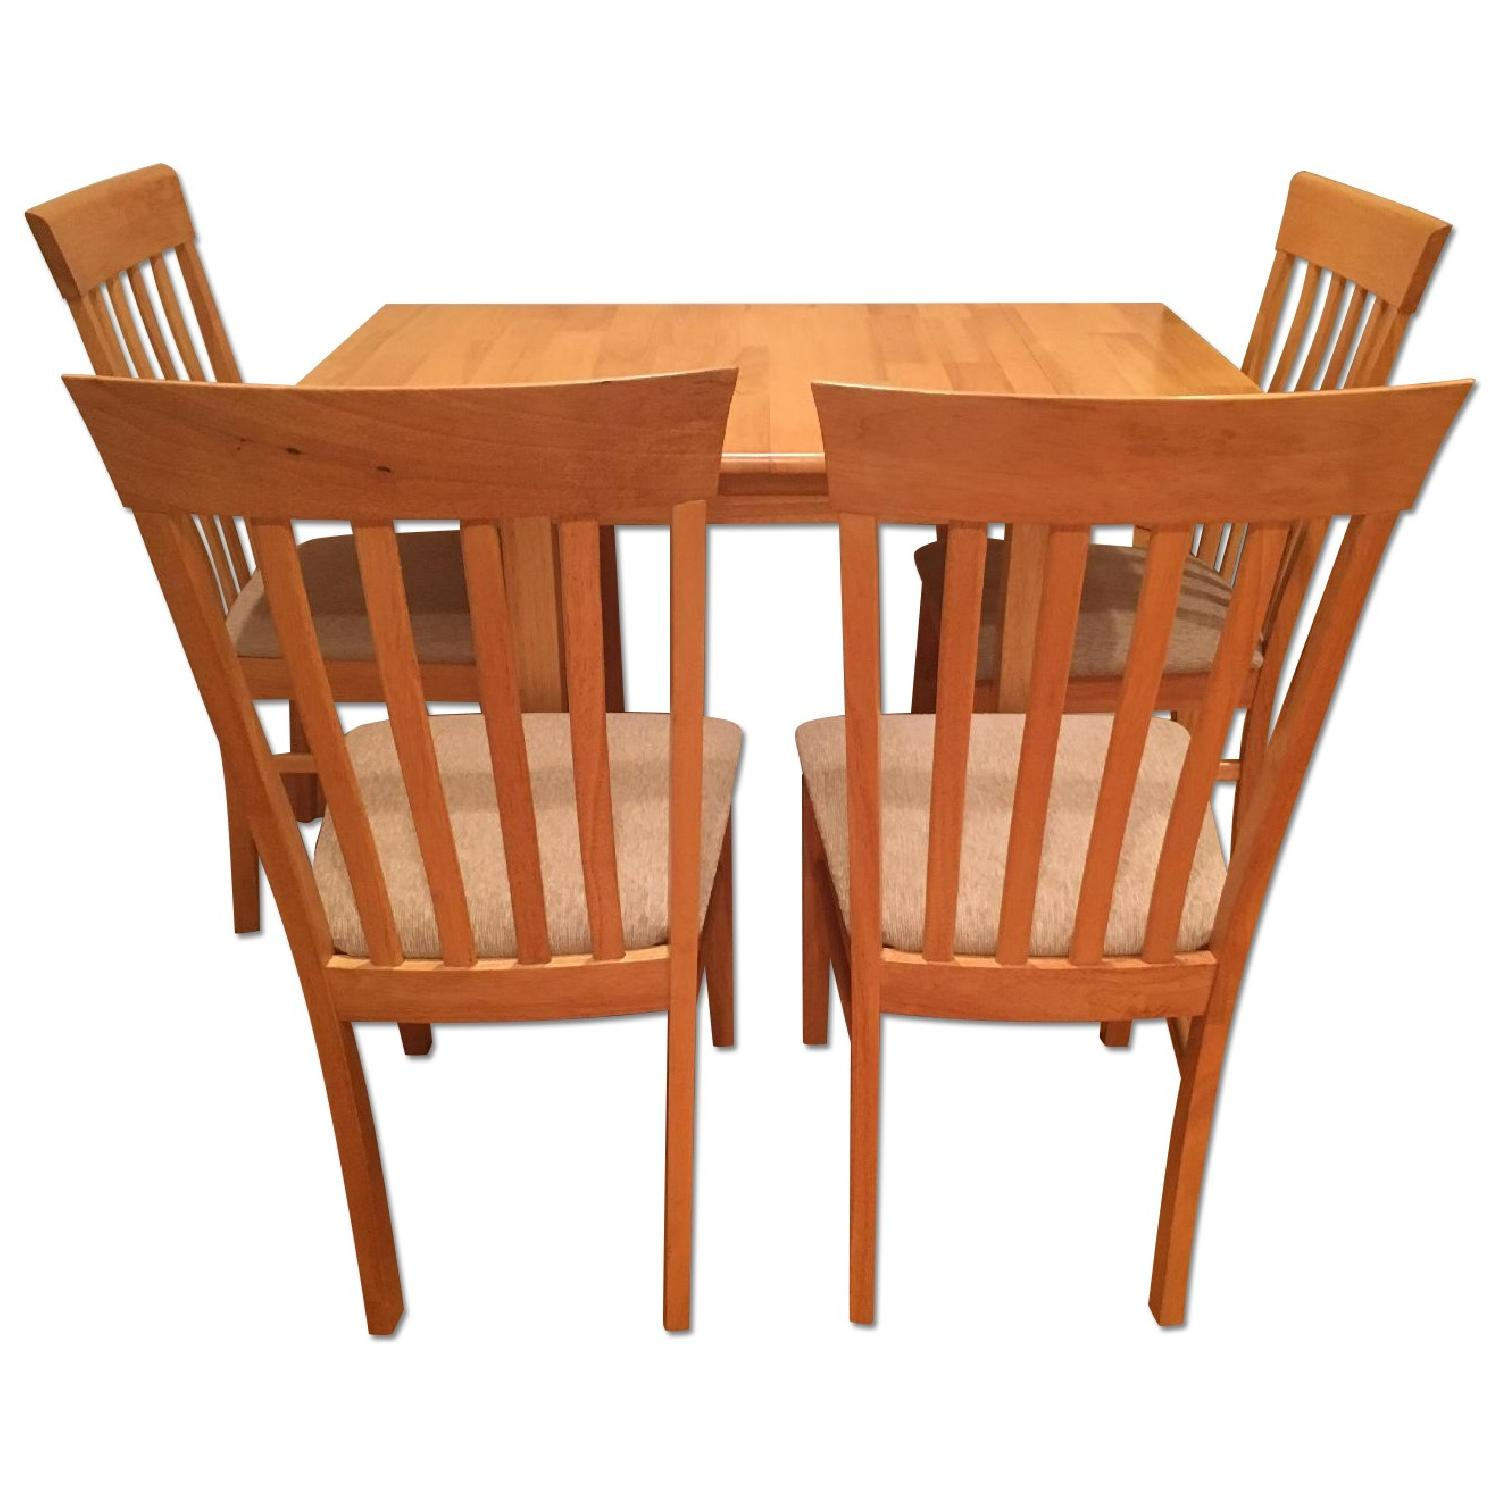 Natural Solid Wood Dining Table w/ 4 Chairs - image-0